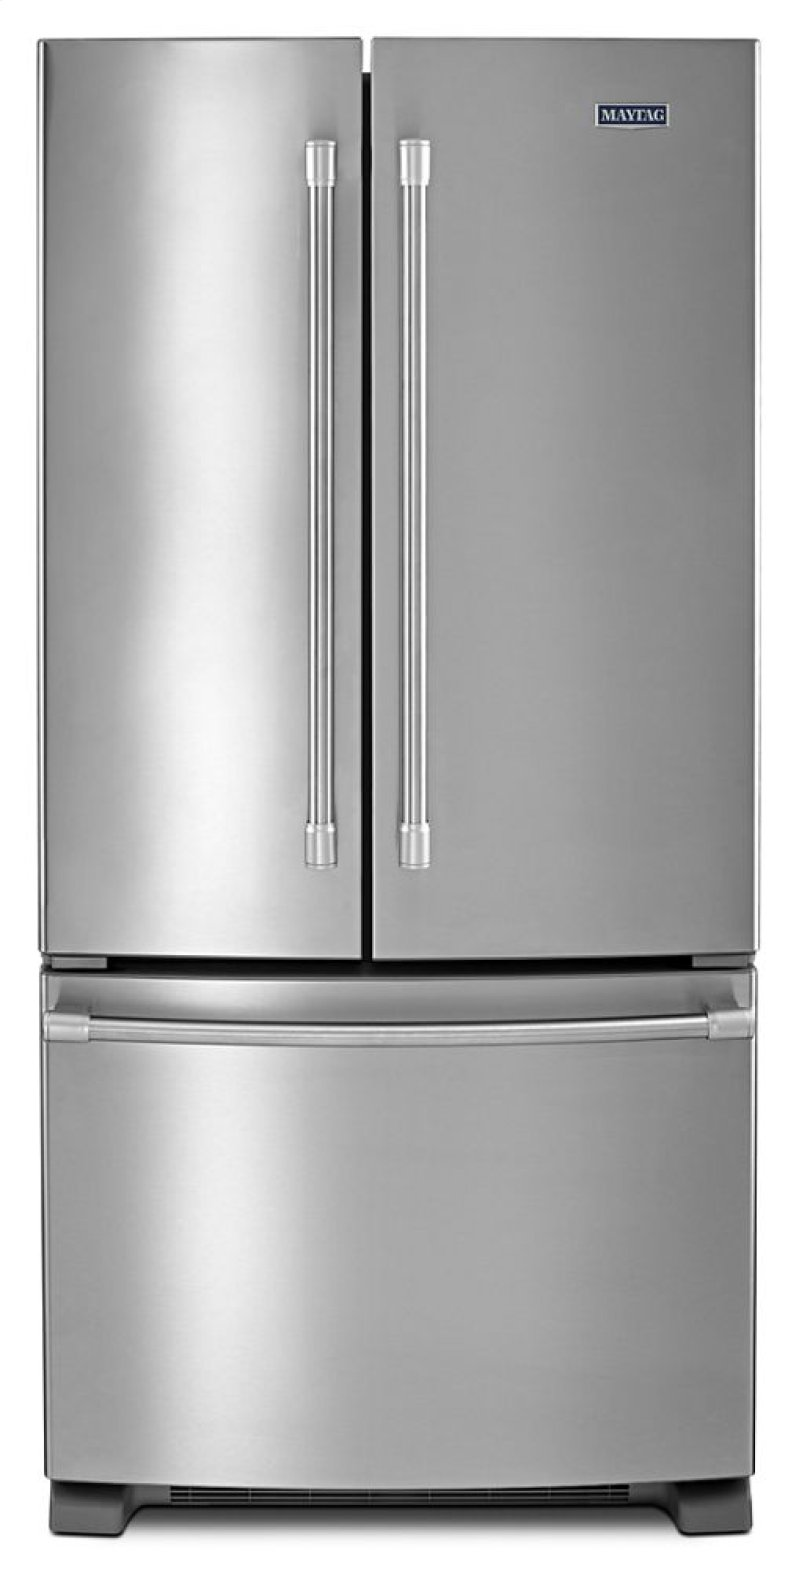 Mff2258dem In Stainless Steel By Maytag In Algona Ia 33 Inch Wide